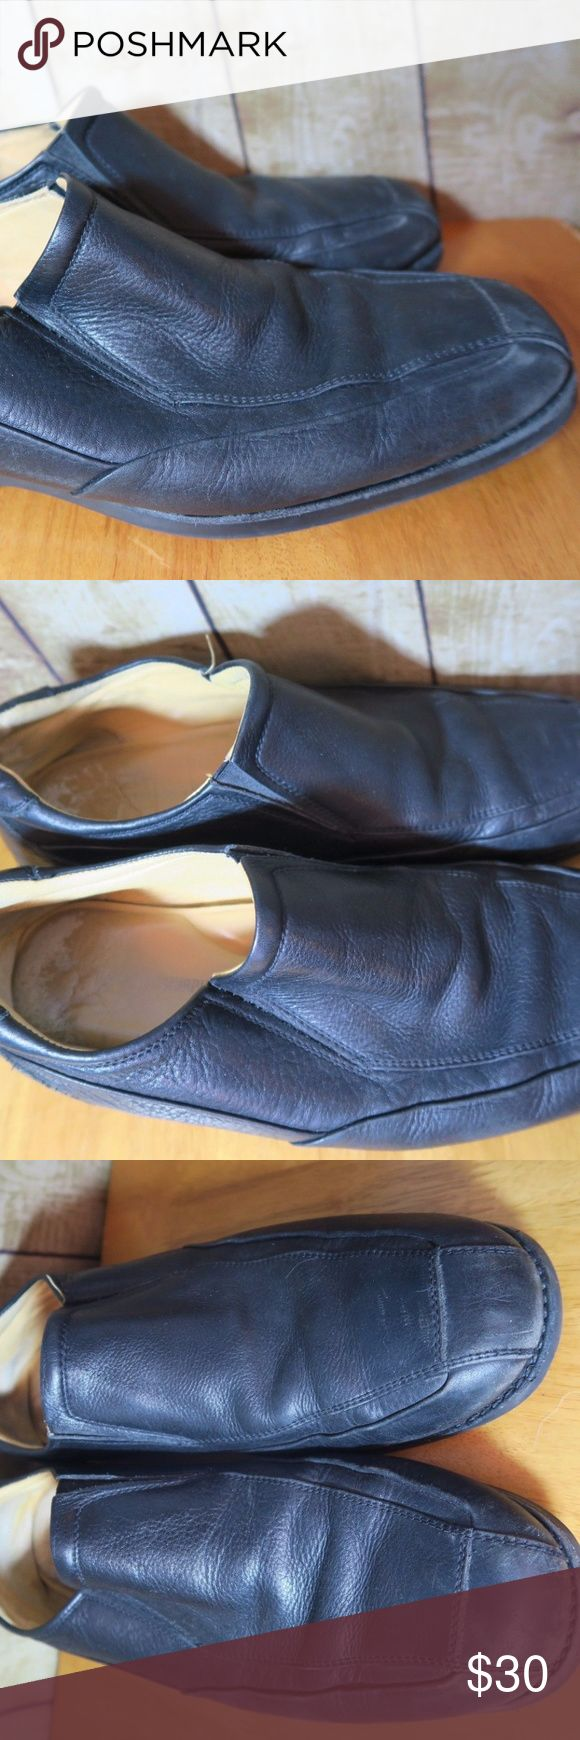 Black Leather Slip On Johnston Murphy Size 11 Men's Shoes Size 11 M Black Leather Slip On Loafer Johnston & Murphy Good exterior condition with light signs of normal wear. Some scratches and wear marks in the inside heel area (see photos). Fading of the Johnston Murphy name in the inside underneath foot area as well. Johnston & Murphy Shoes Loafers & Slip-Ons